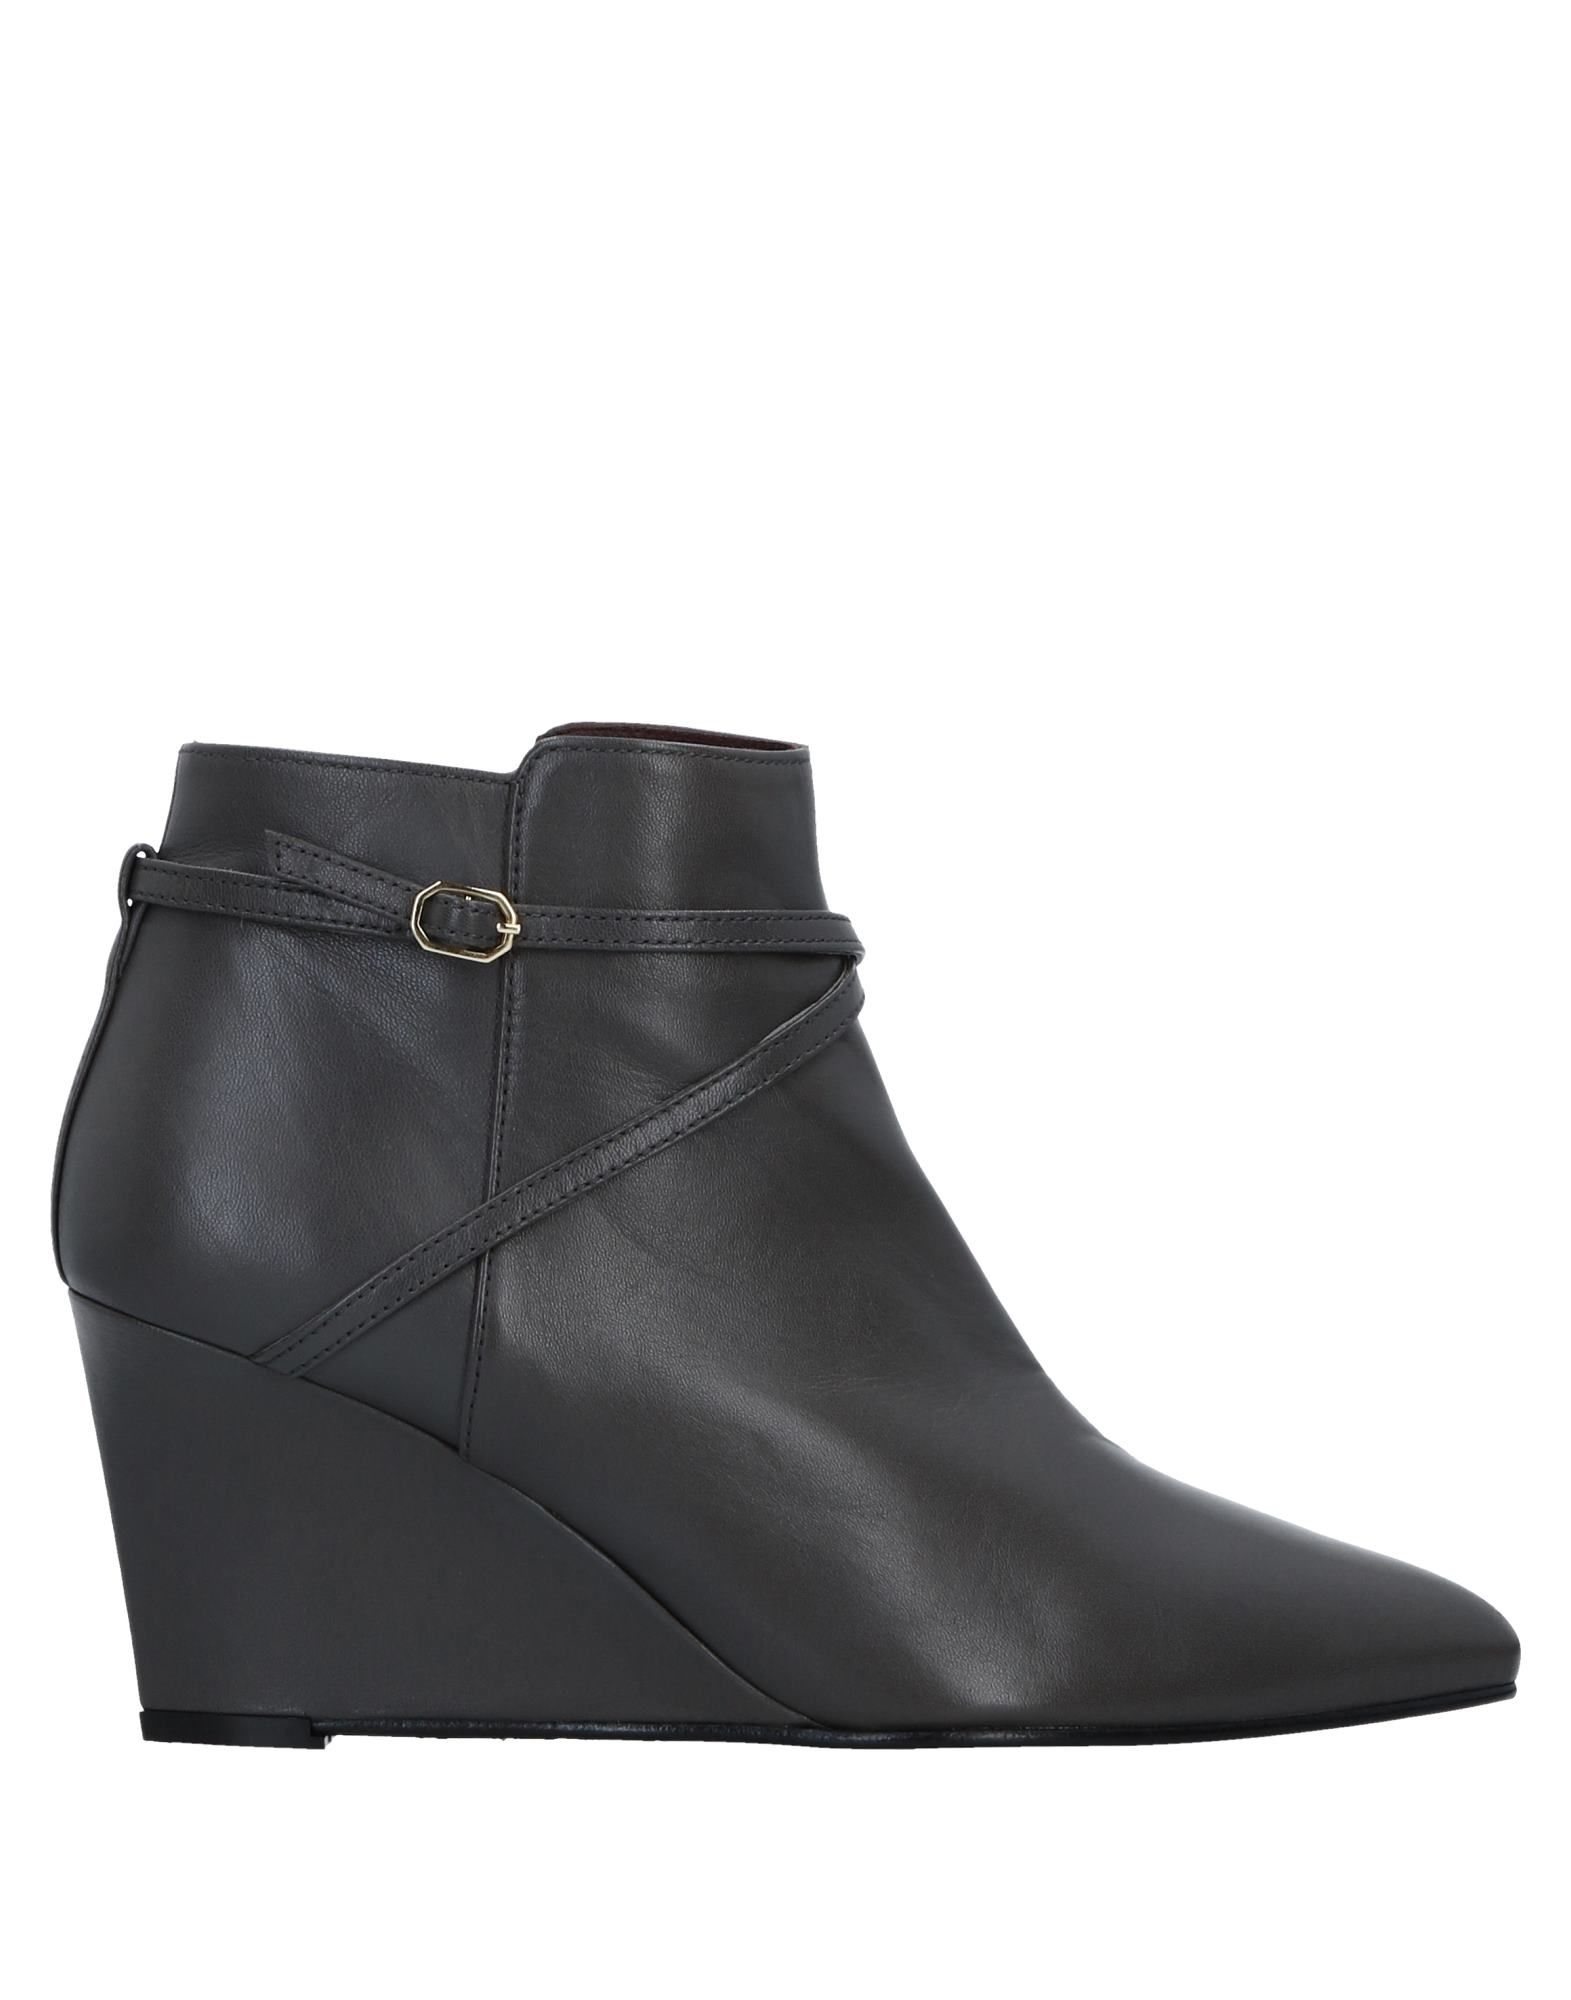 AVRIL GAU Ankle Boot in Lead